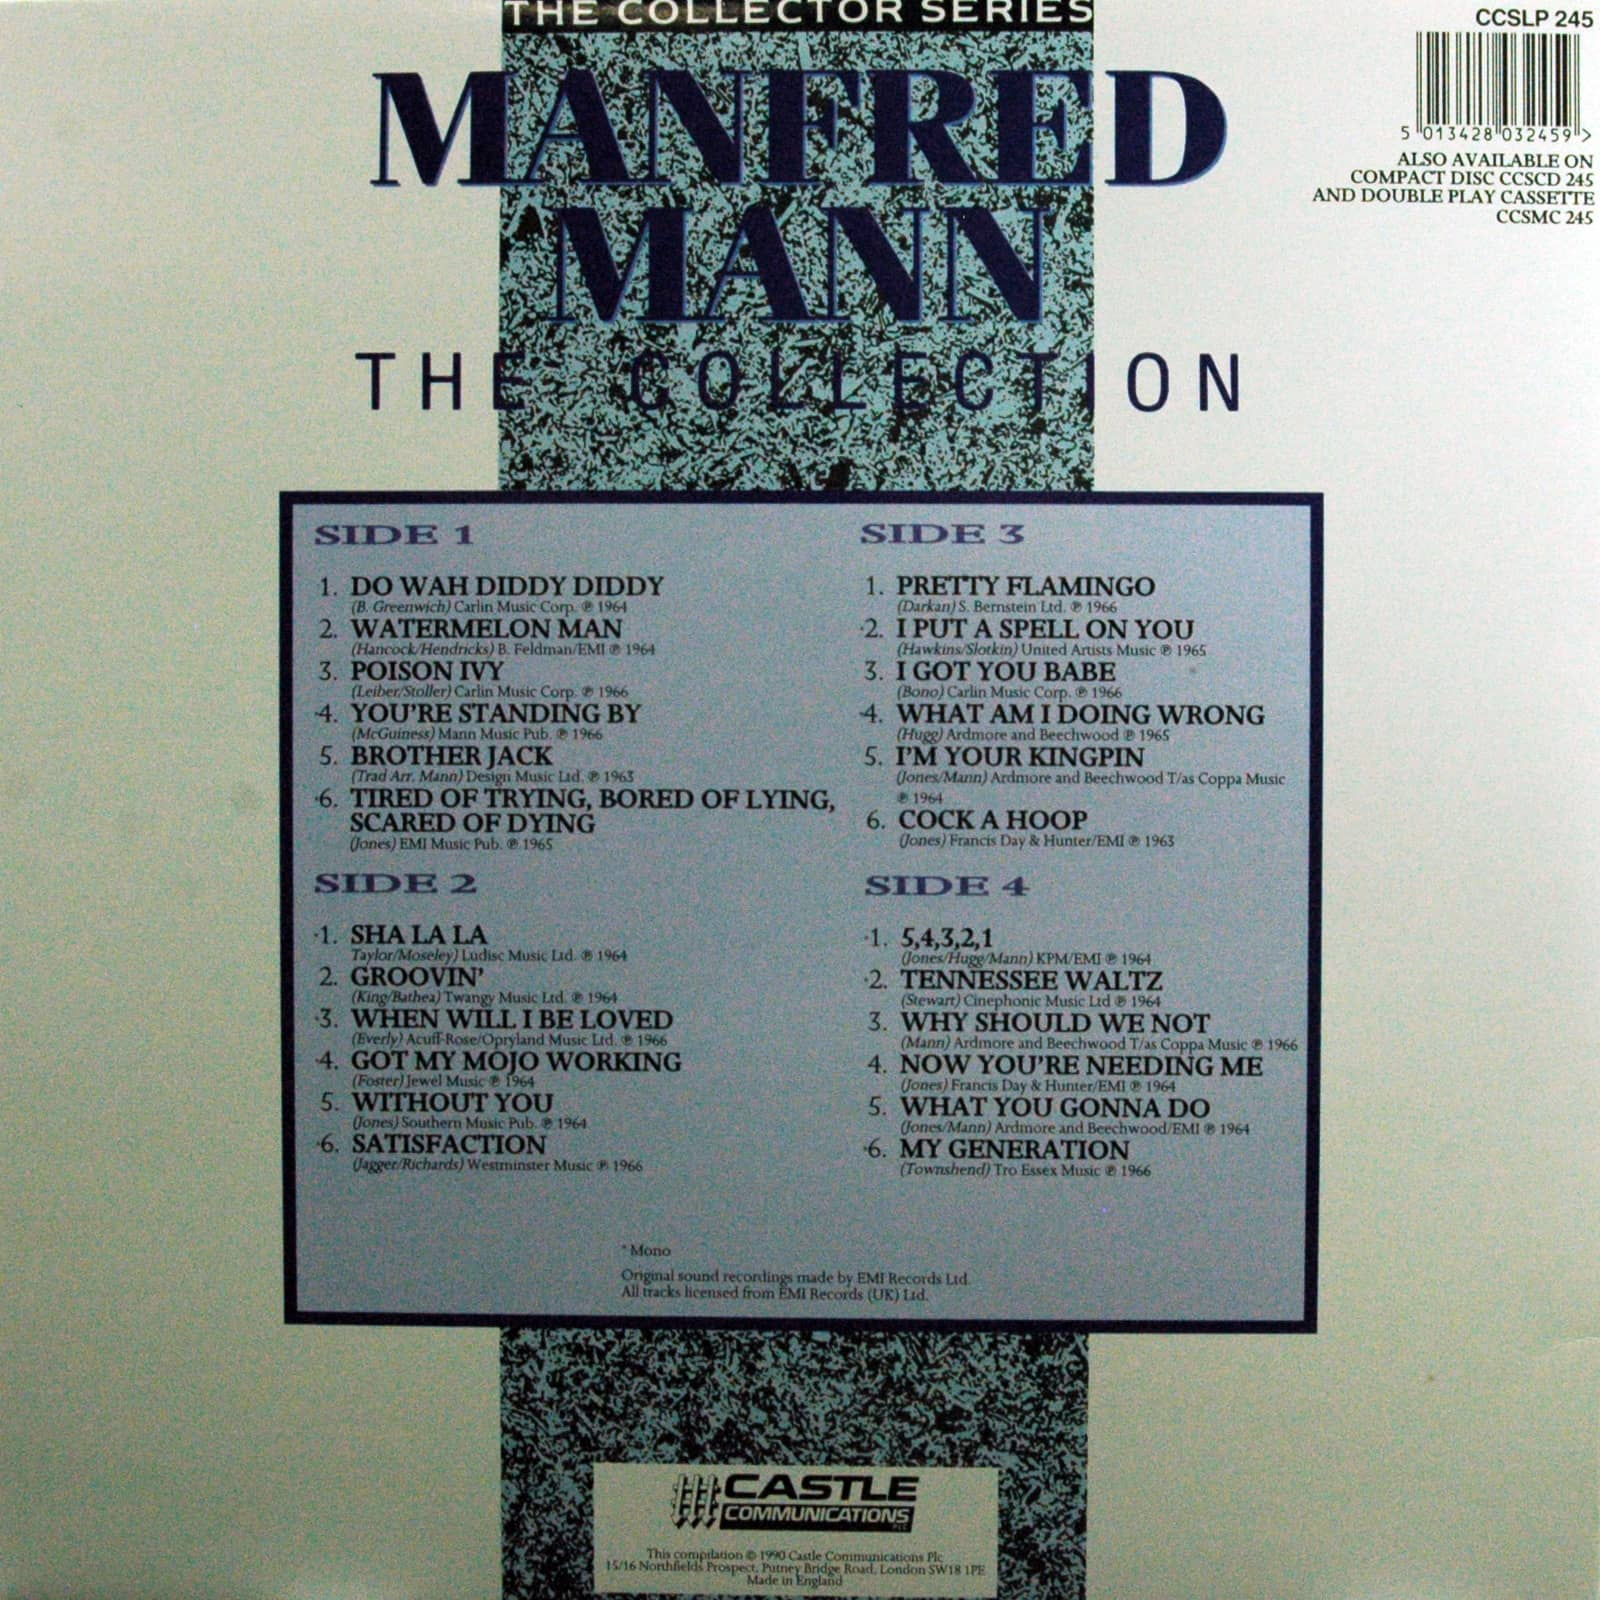 Manfred Mann The Collection - The Collector Series (2-LP)